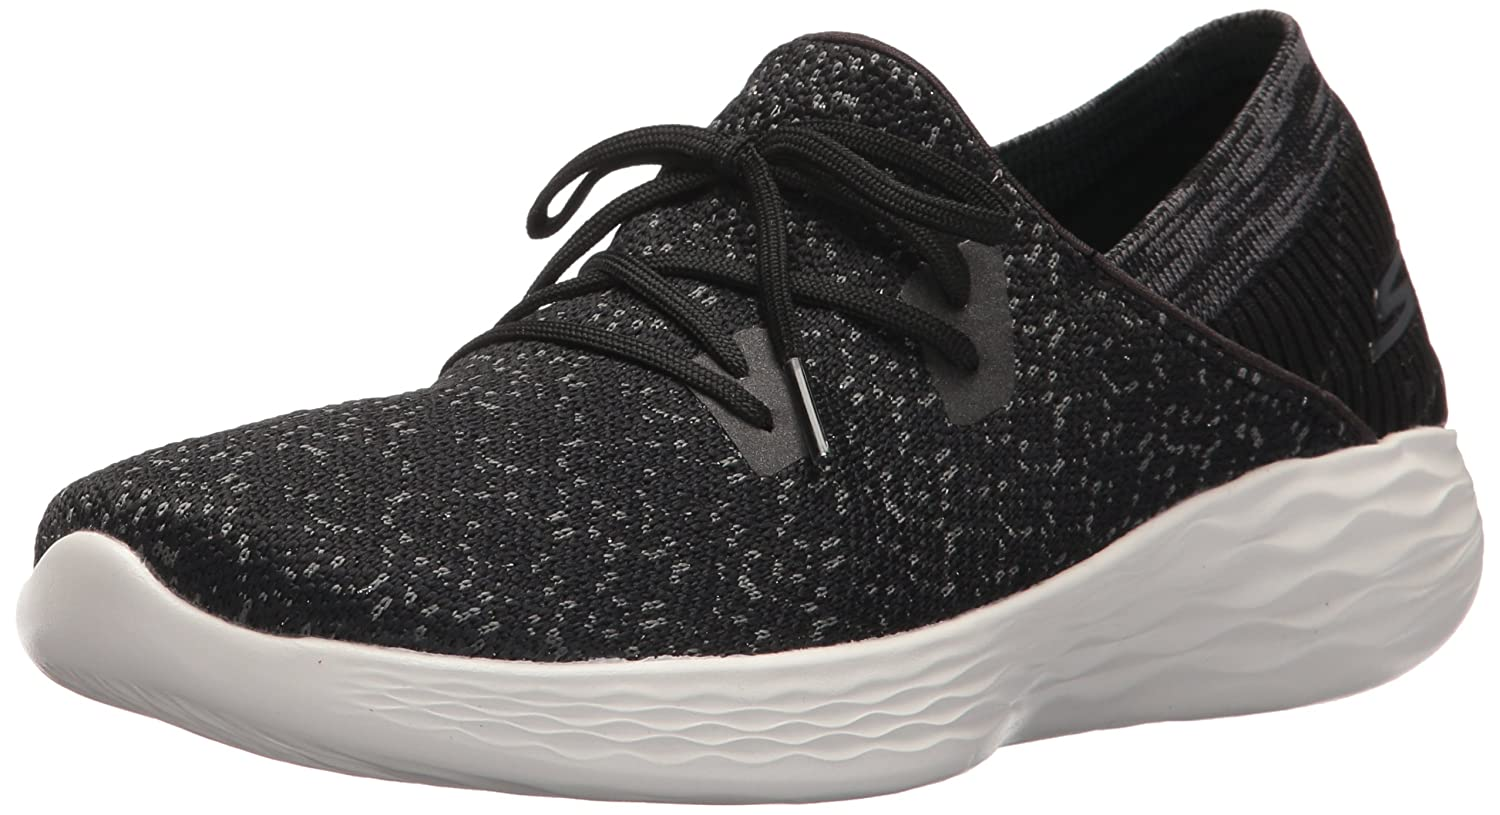 Skechers Women's You - Exhale Sneakers 14964